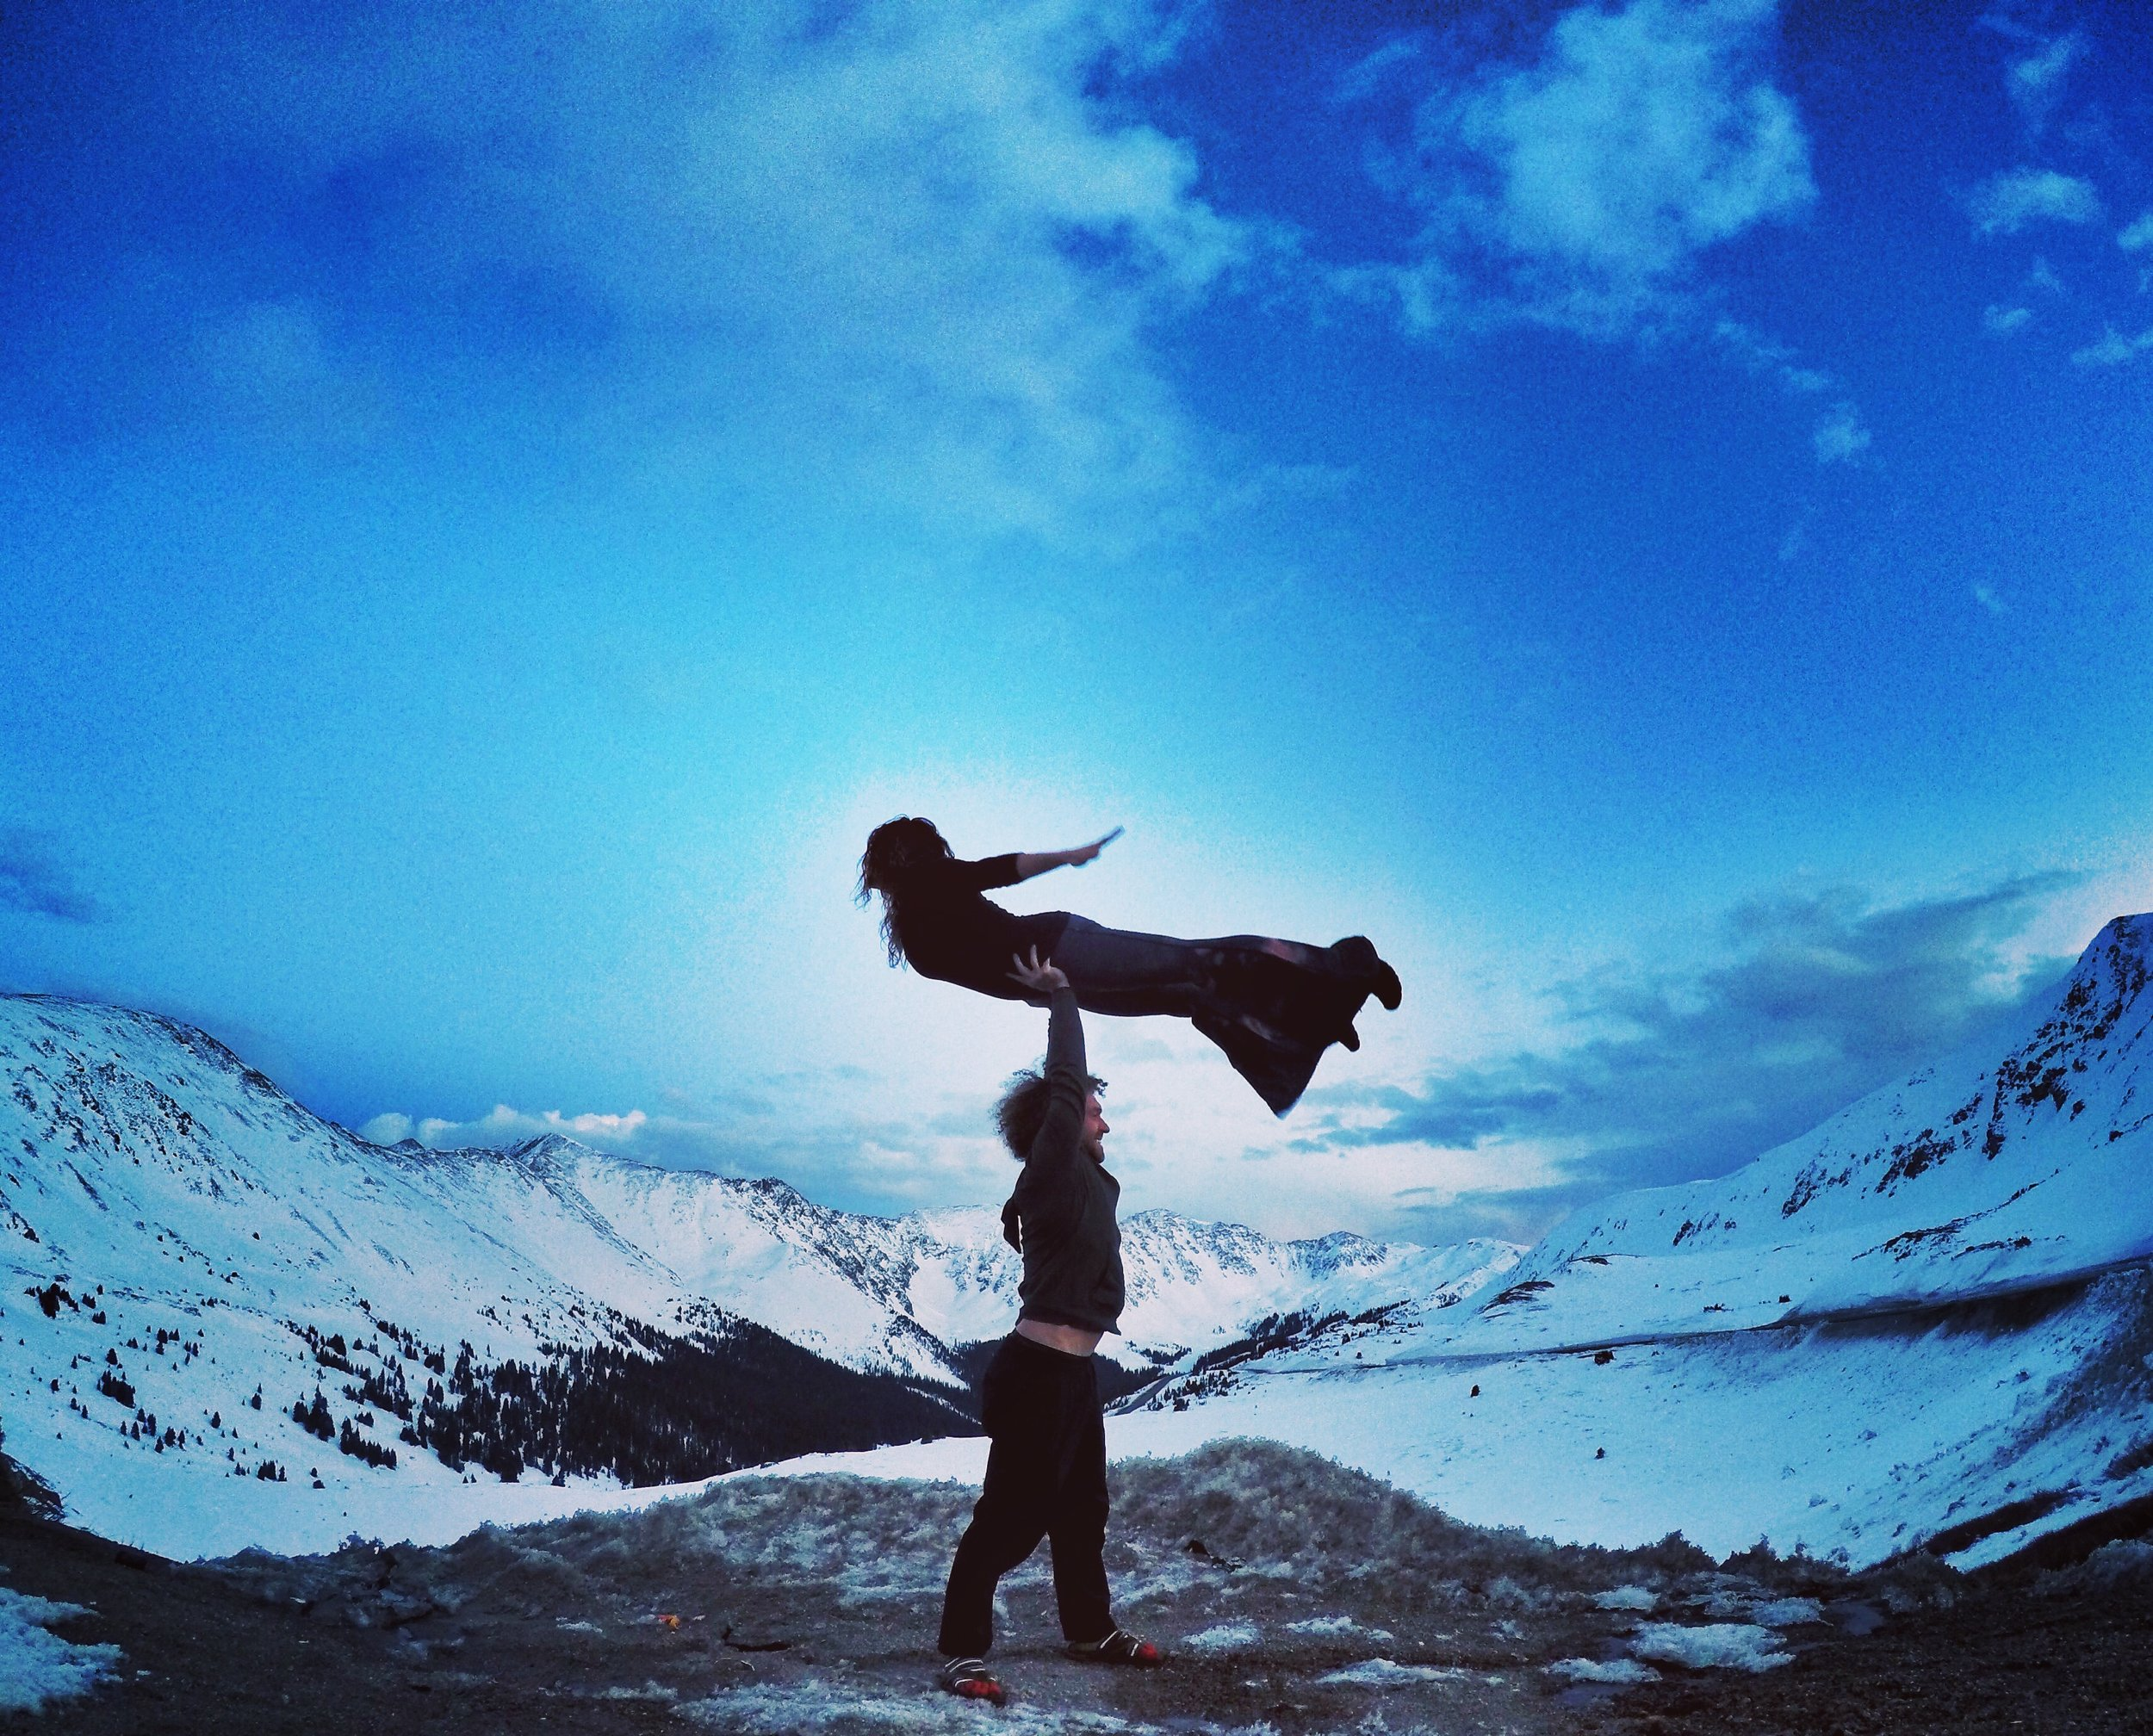 AcroYoga by the Snow